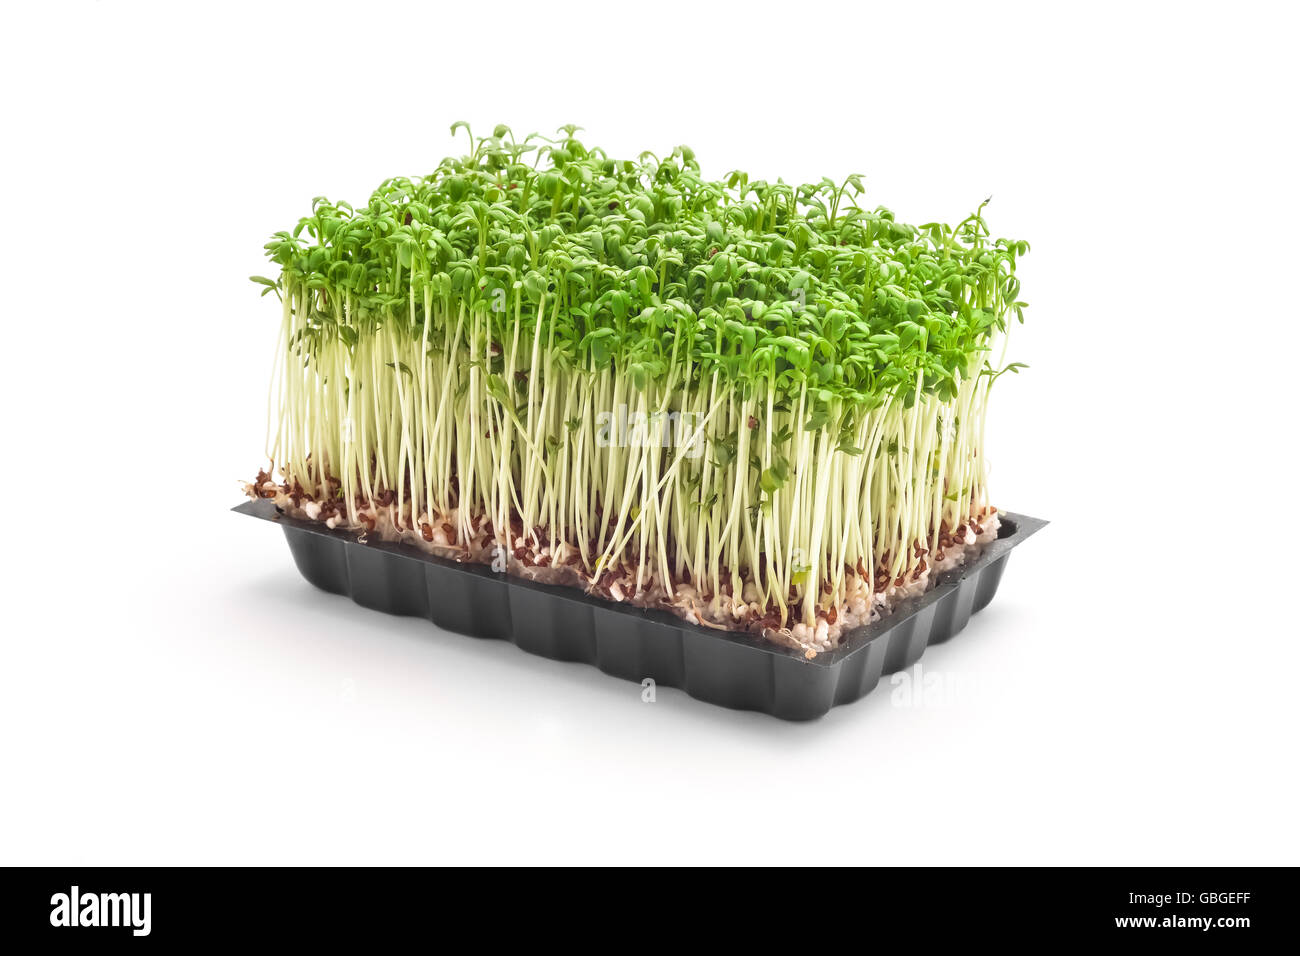 cress sprouts isolated on white - Stock Image